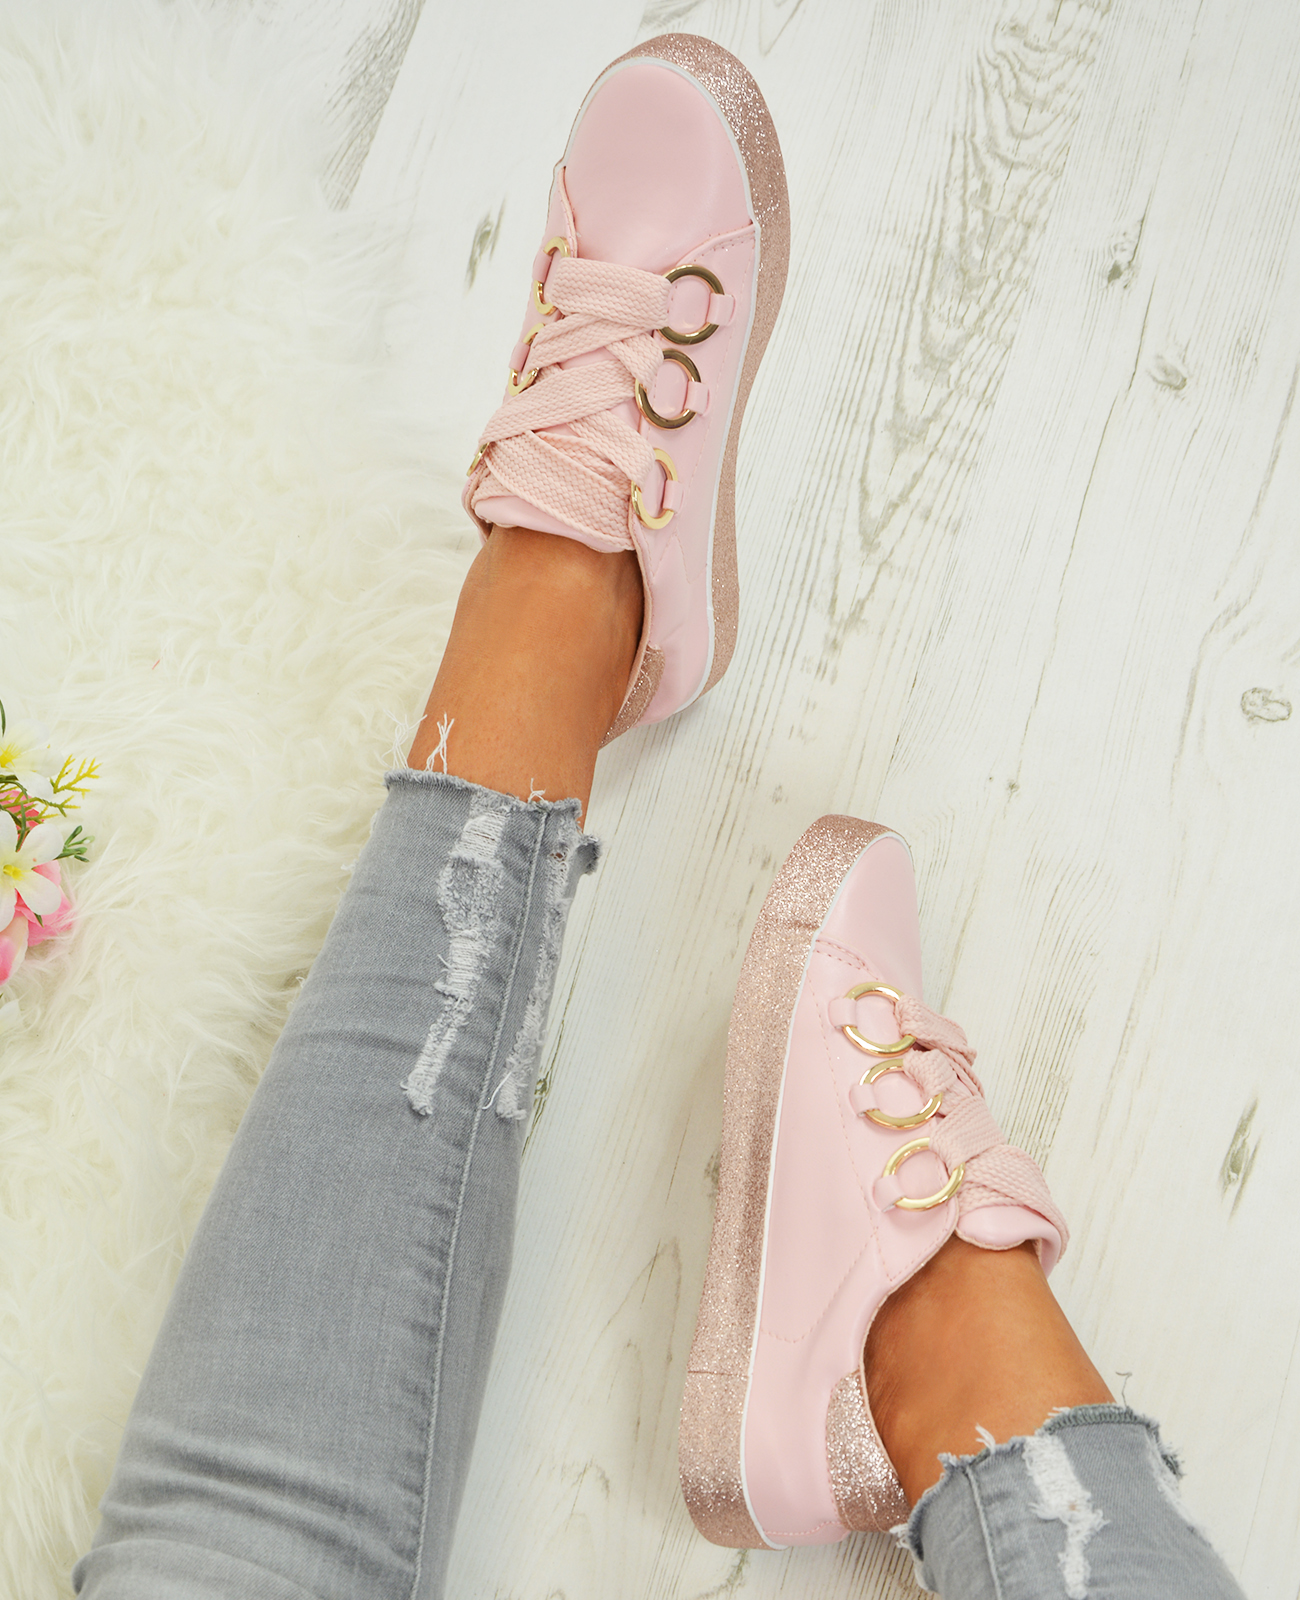 LADIES-WOMENS-GLITTER-SNEAKERS-SPARKLE-TRAINERS-LACE-UP-PLIMSOLL-PUMPS-SHOES thumbnail 15